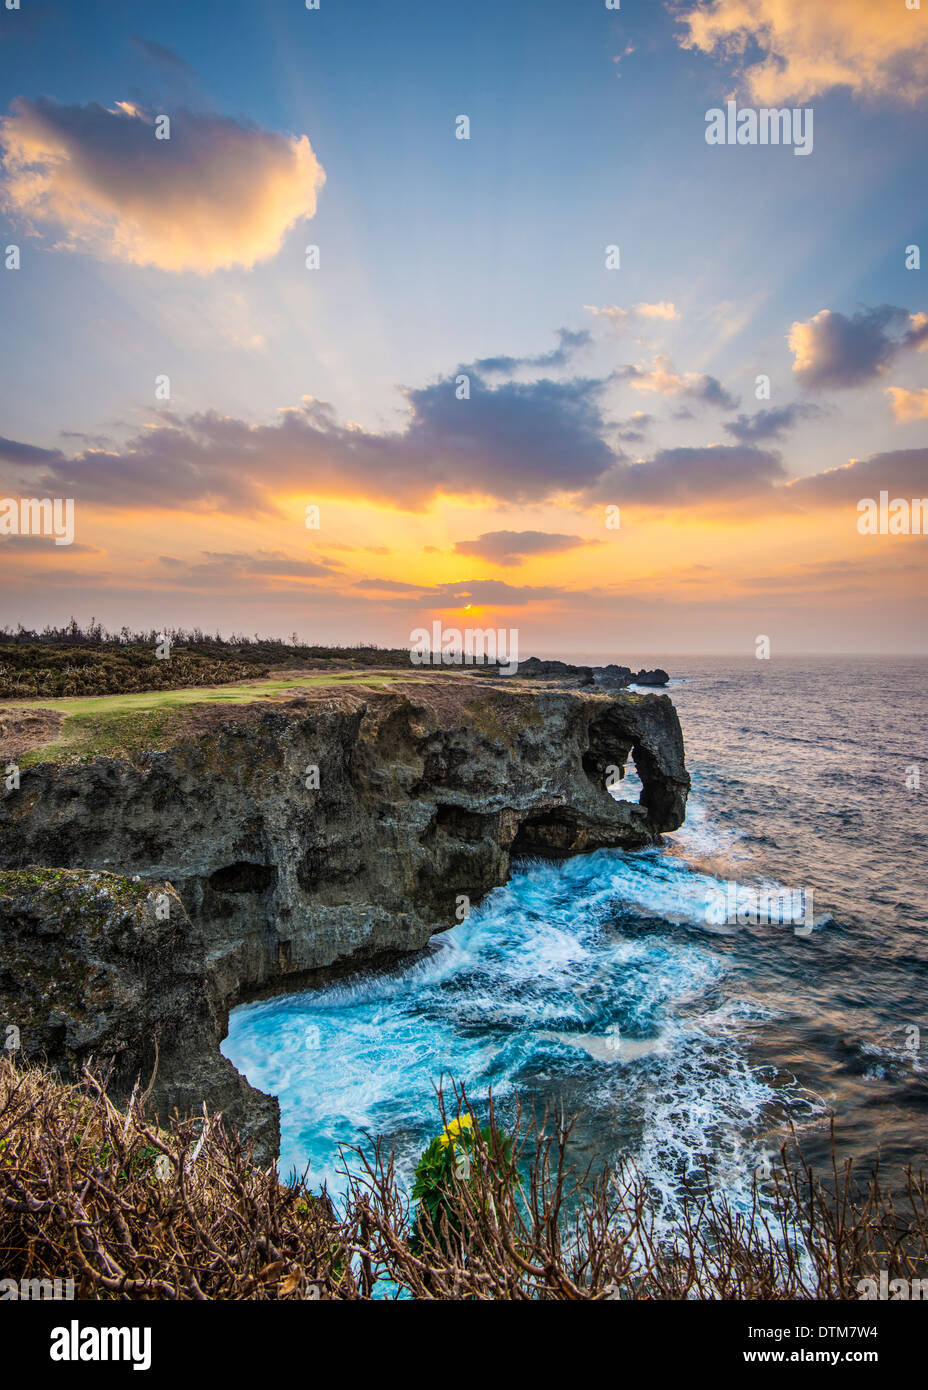 Manzamo Cape in Okinawa, Japan. Stockbild